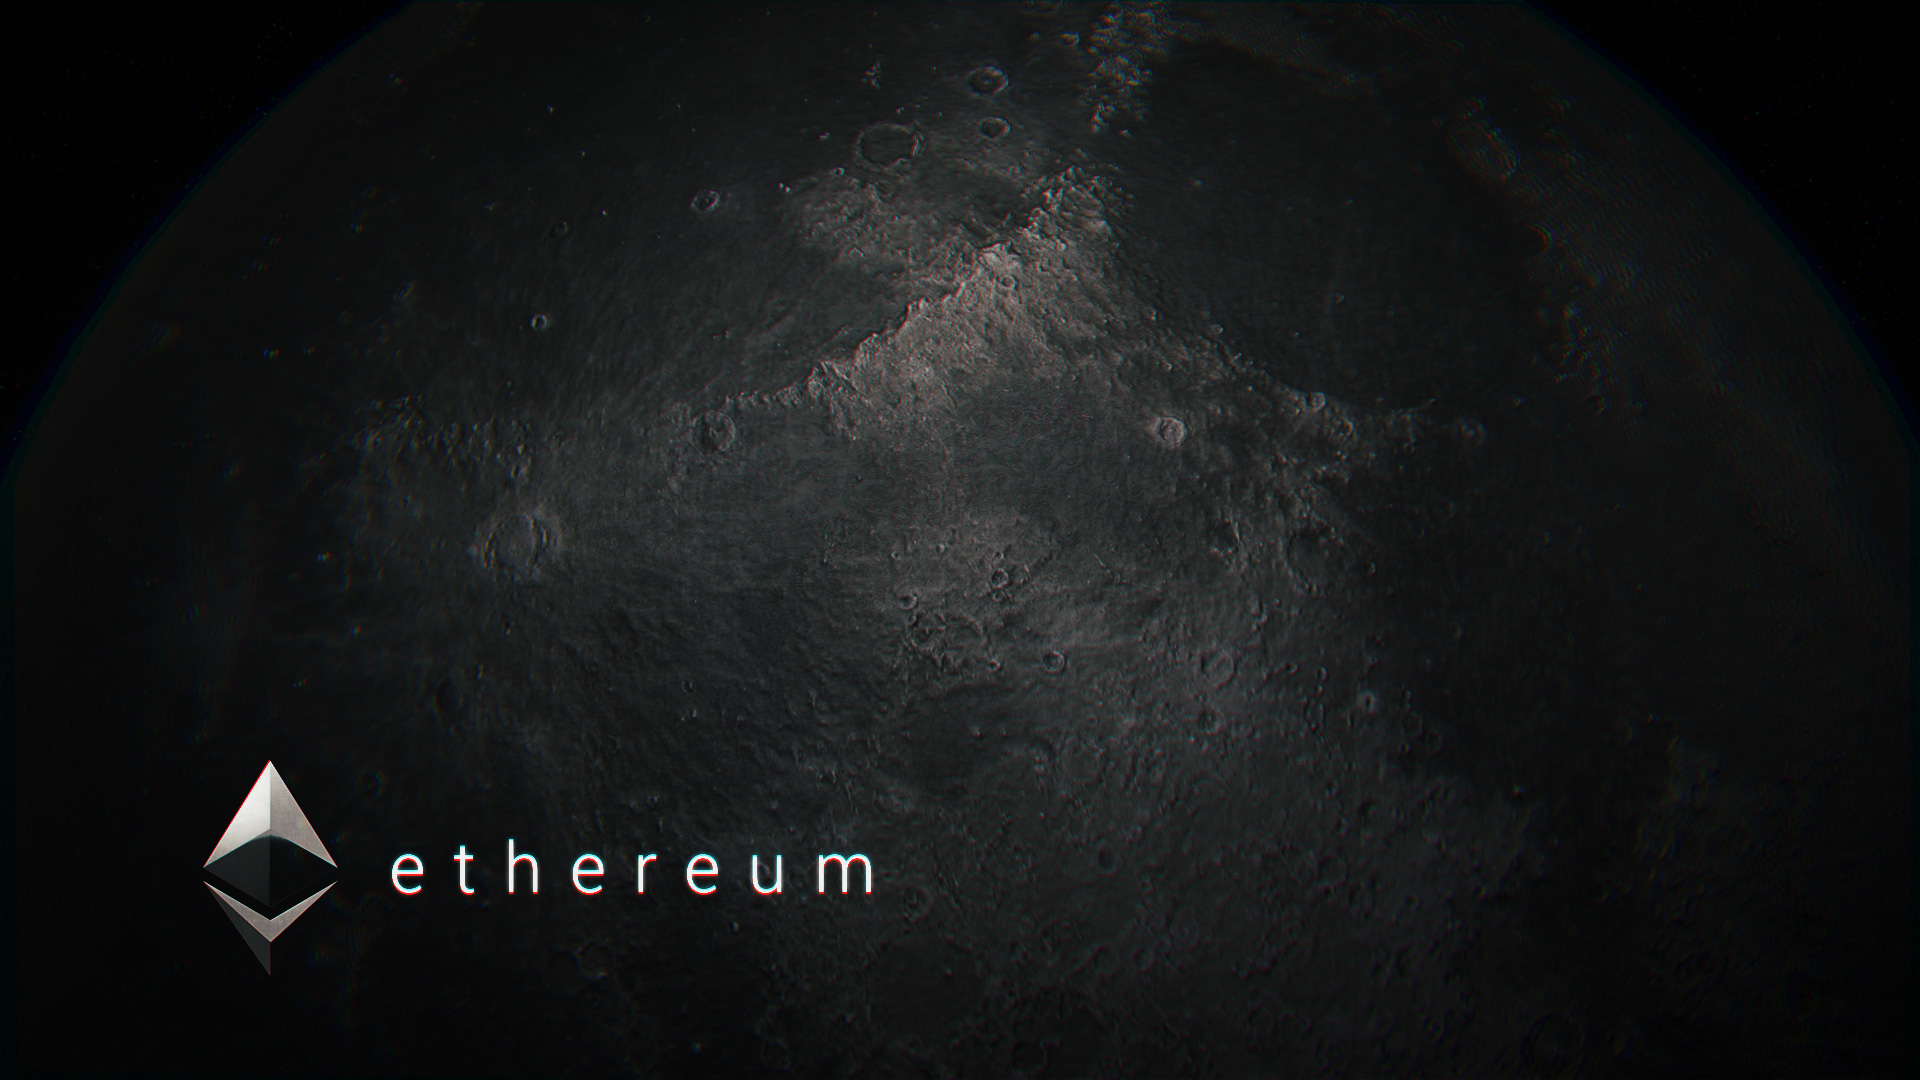 Ethereum Wallpapers Animation Steemit 1920x1080